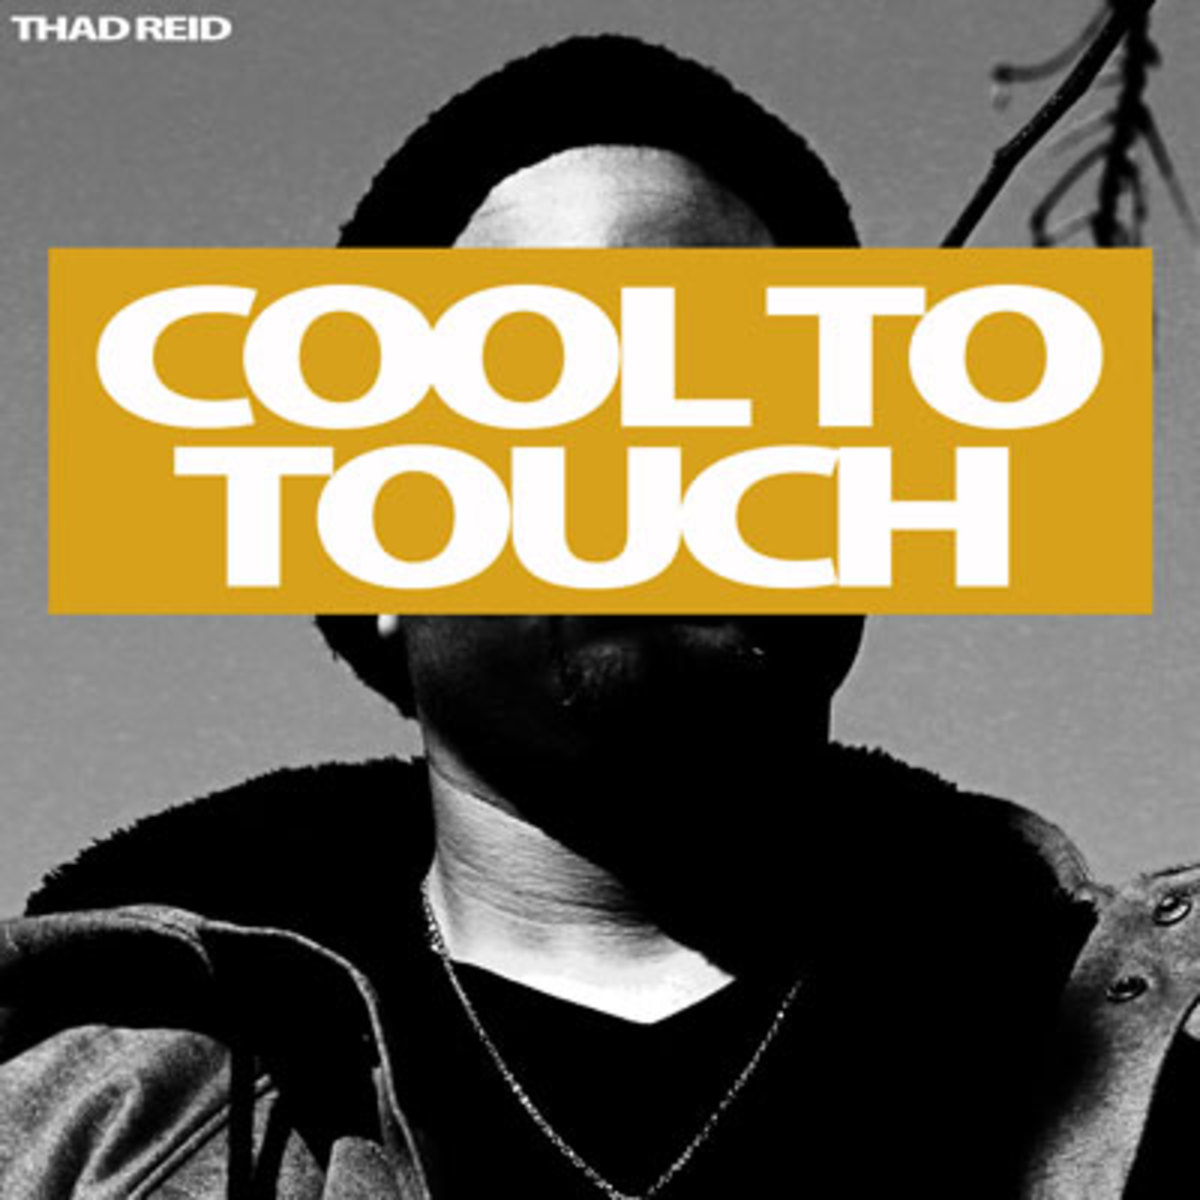 thadreid-cooltotouch.jpg